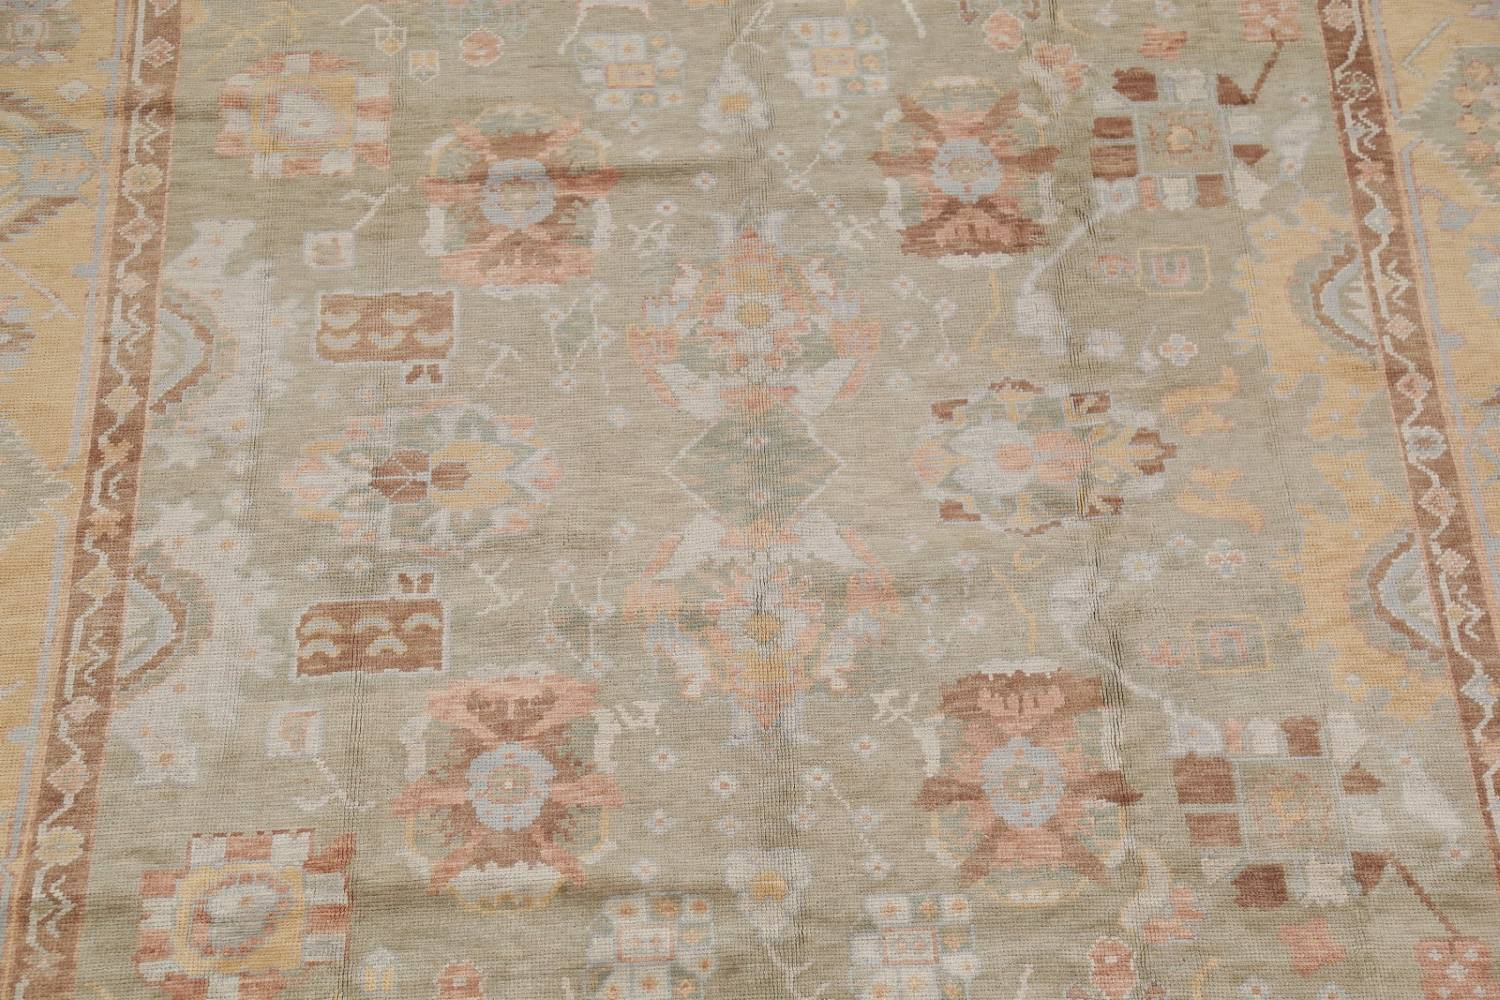 Vegetable Dye Muted Green Oushak Turkish Hand-Knotted Area Rug 9x12 image 4